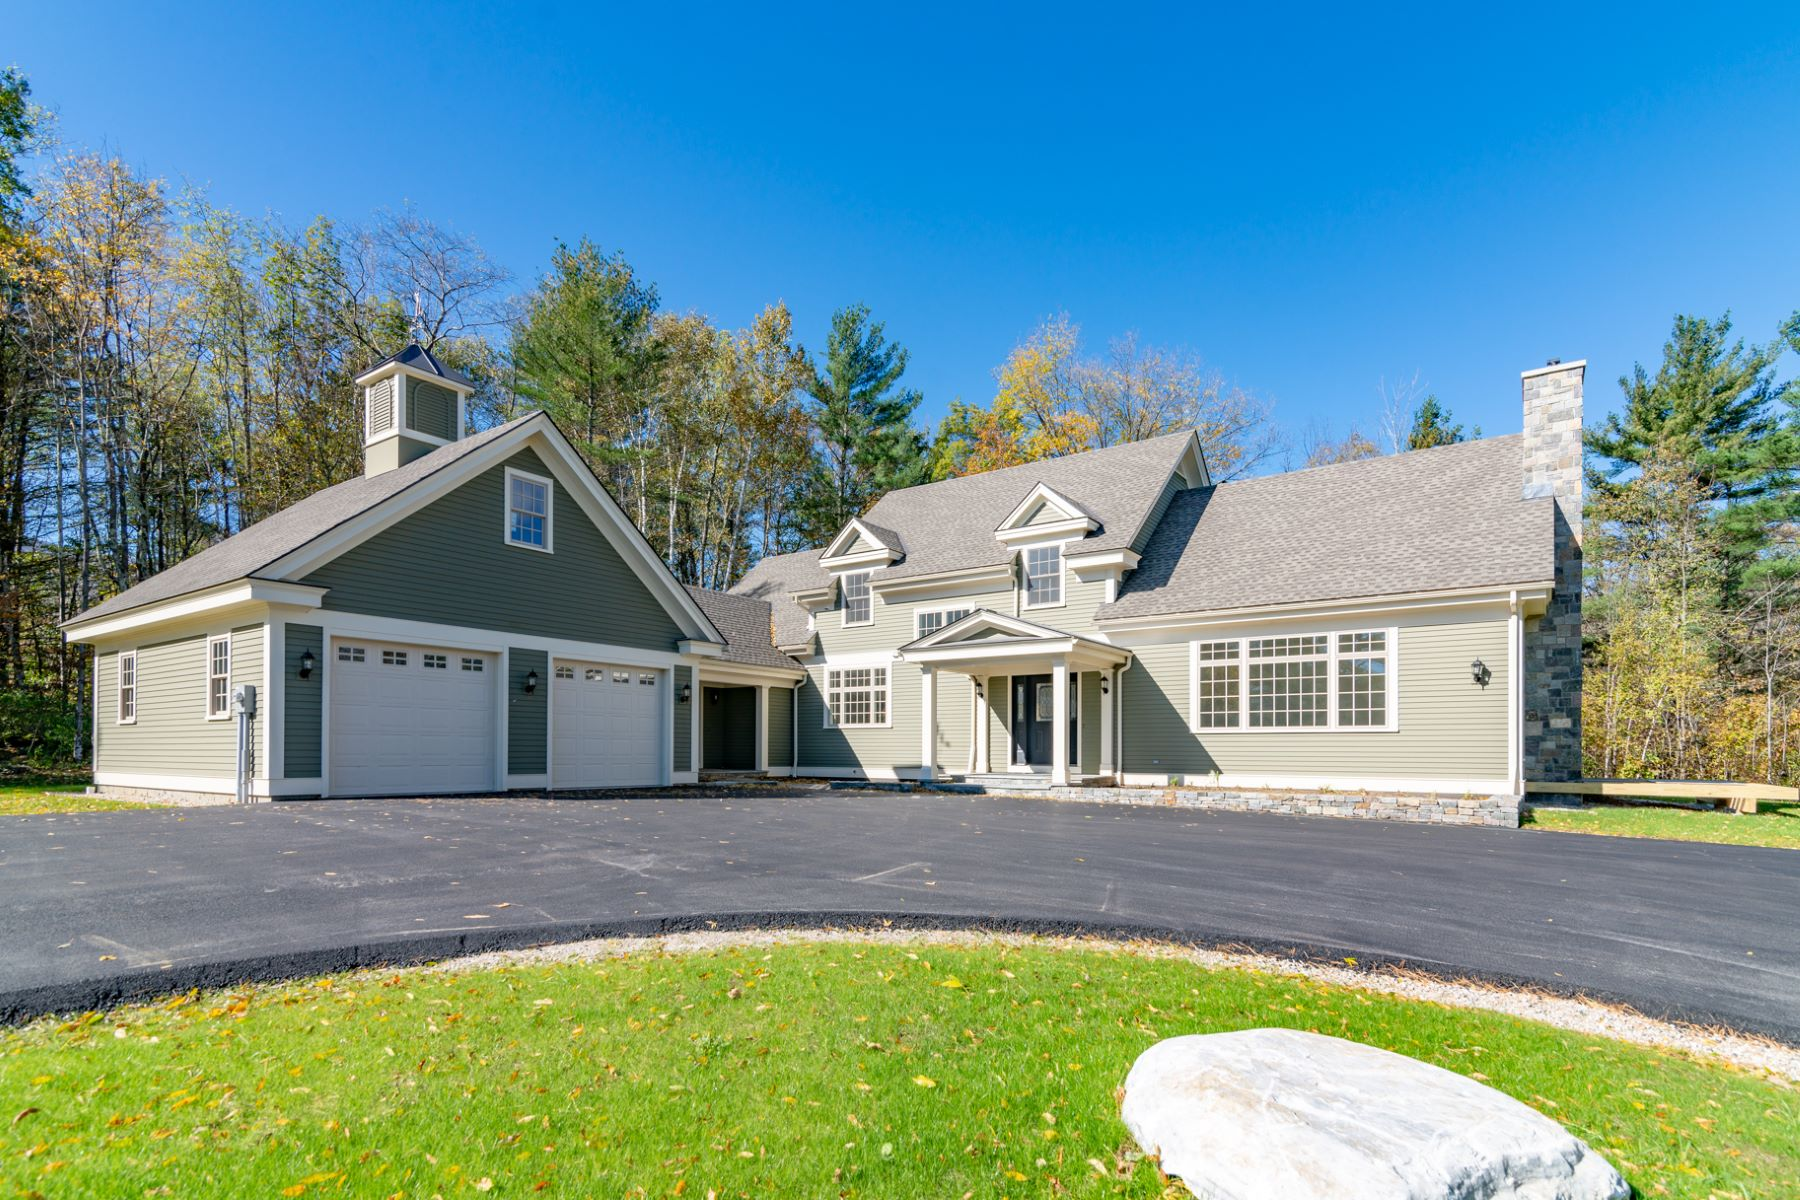 Single Family Home for Sale at 595 Partridge Hill Manchester 595 Partridge Hill Rd Manchester, Vermont 05255 United States